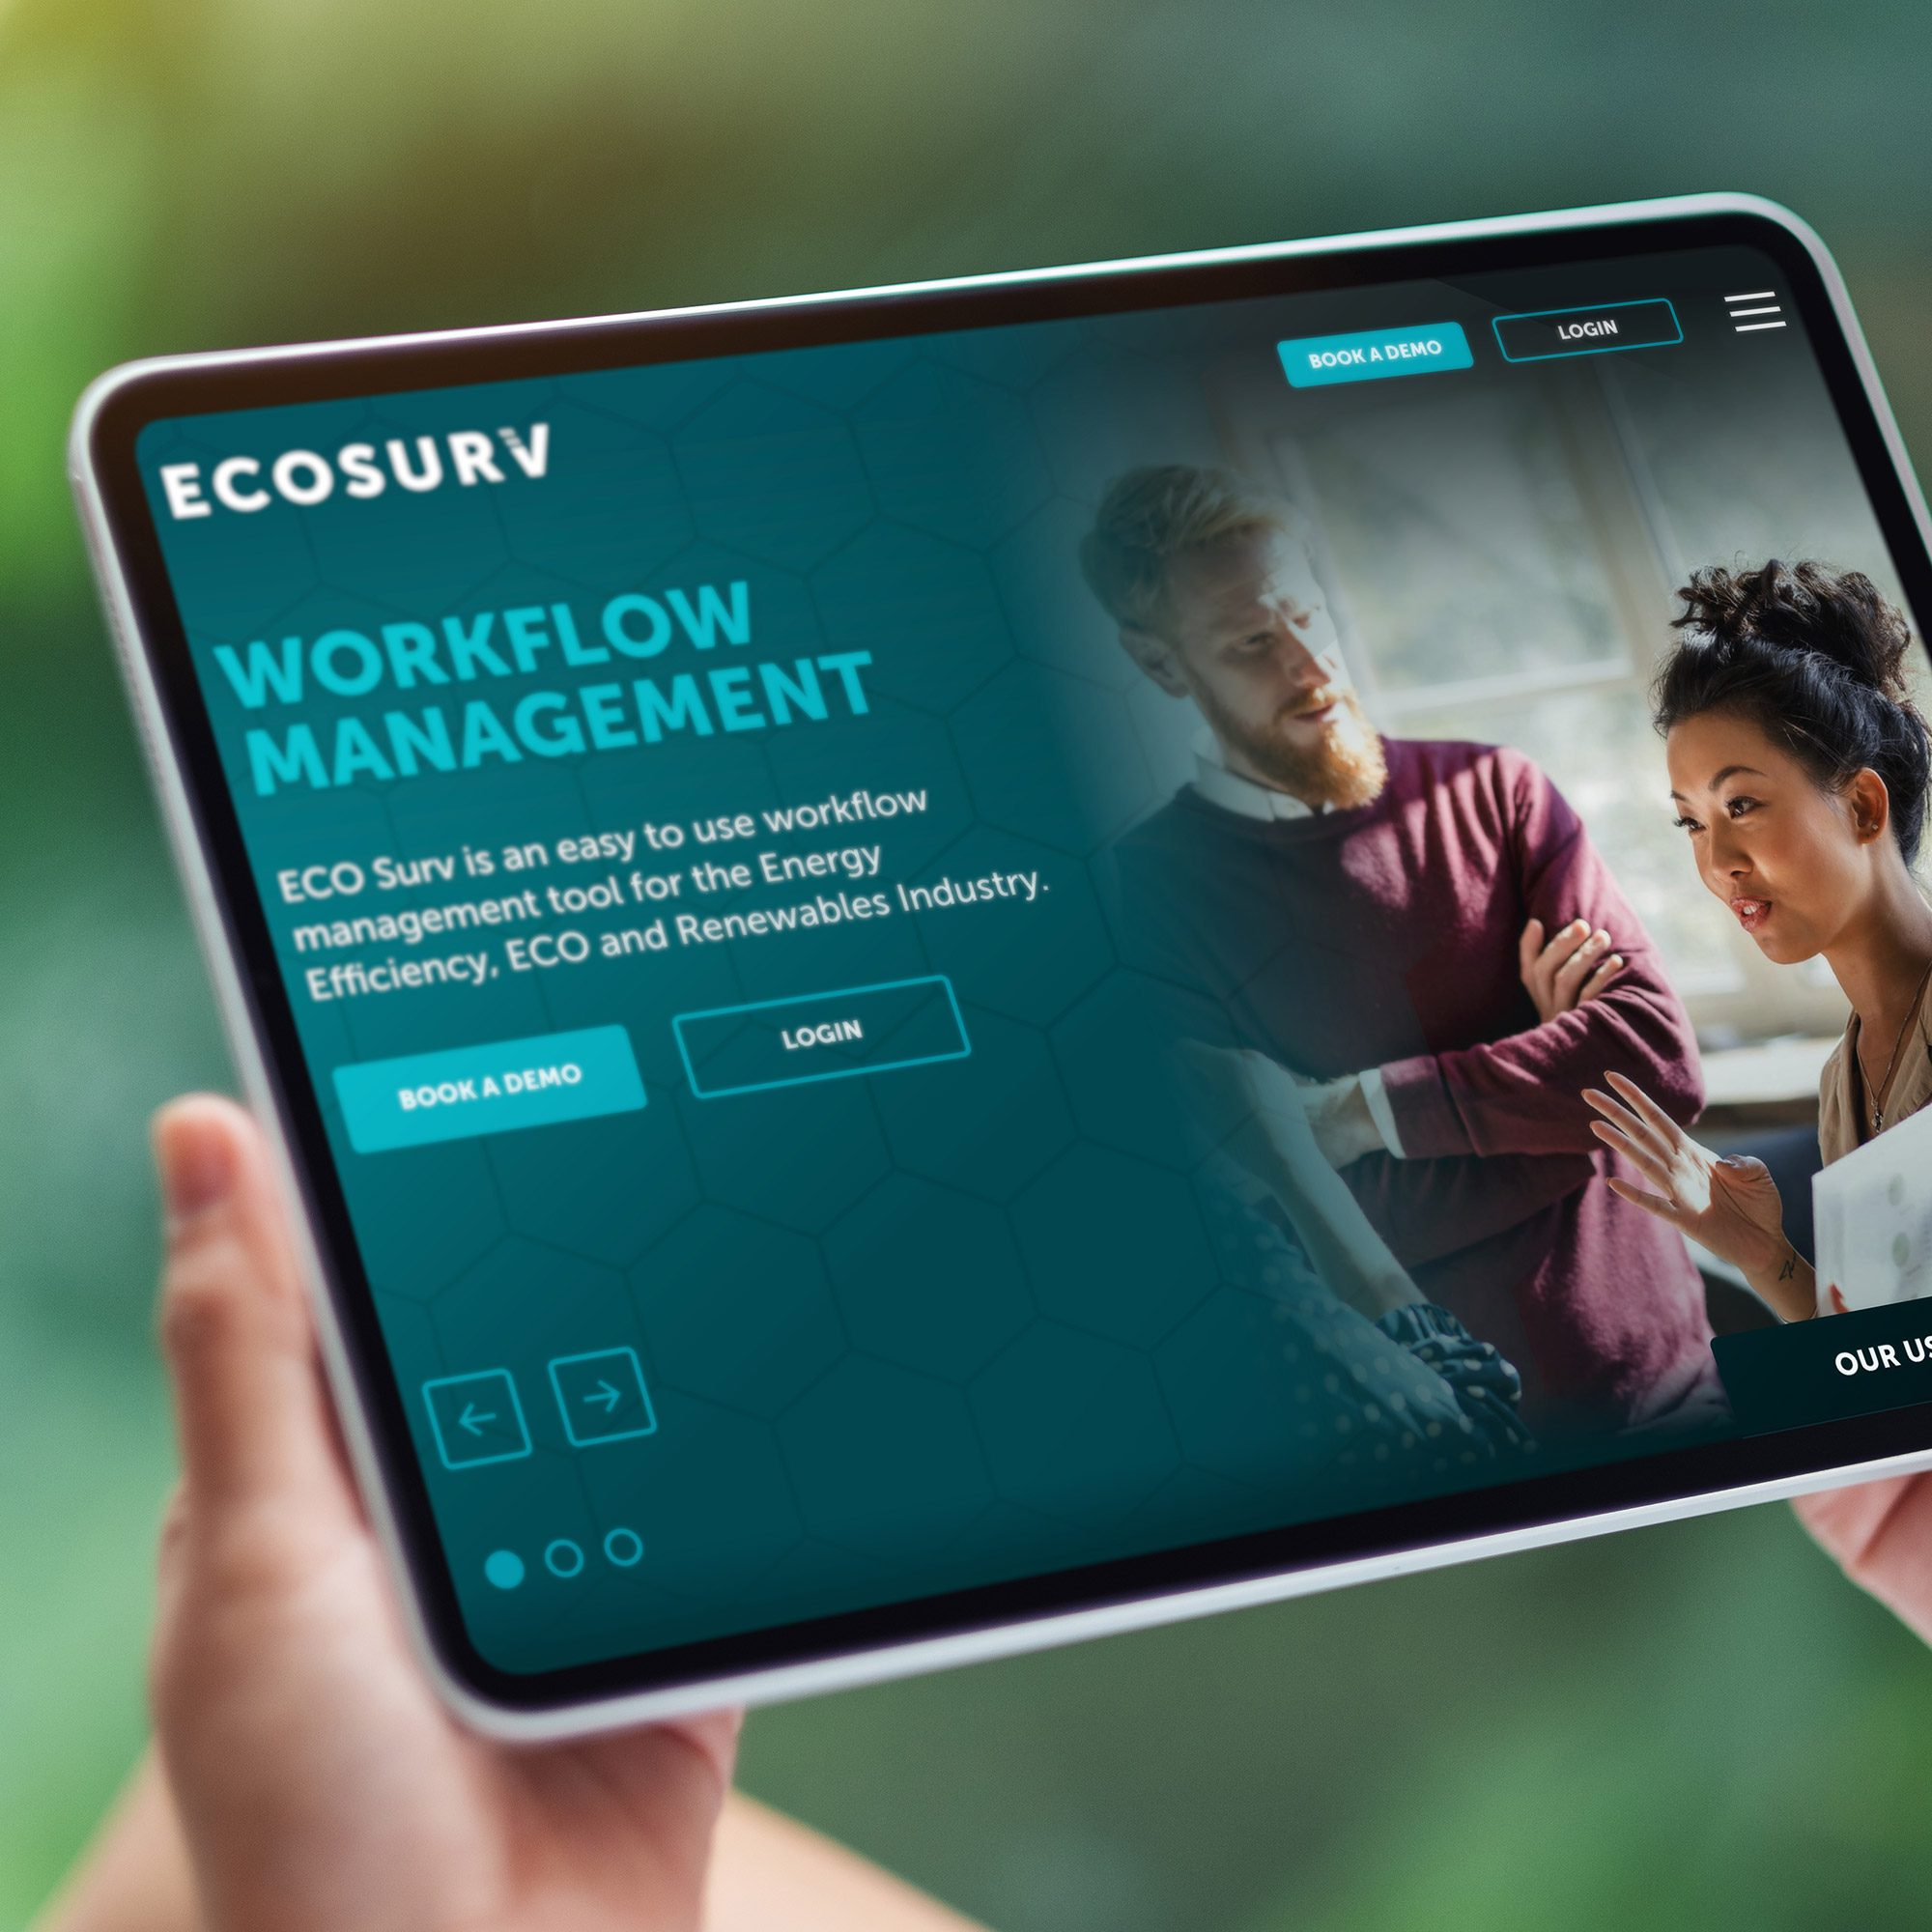 New brand and website design for ECO Surv in Lancashire